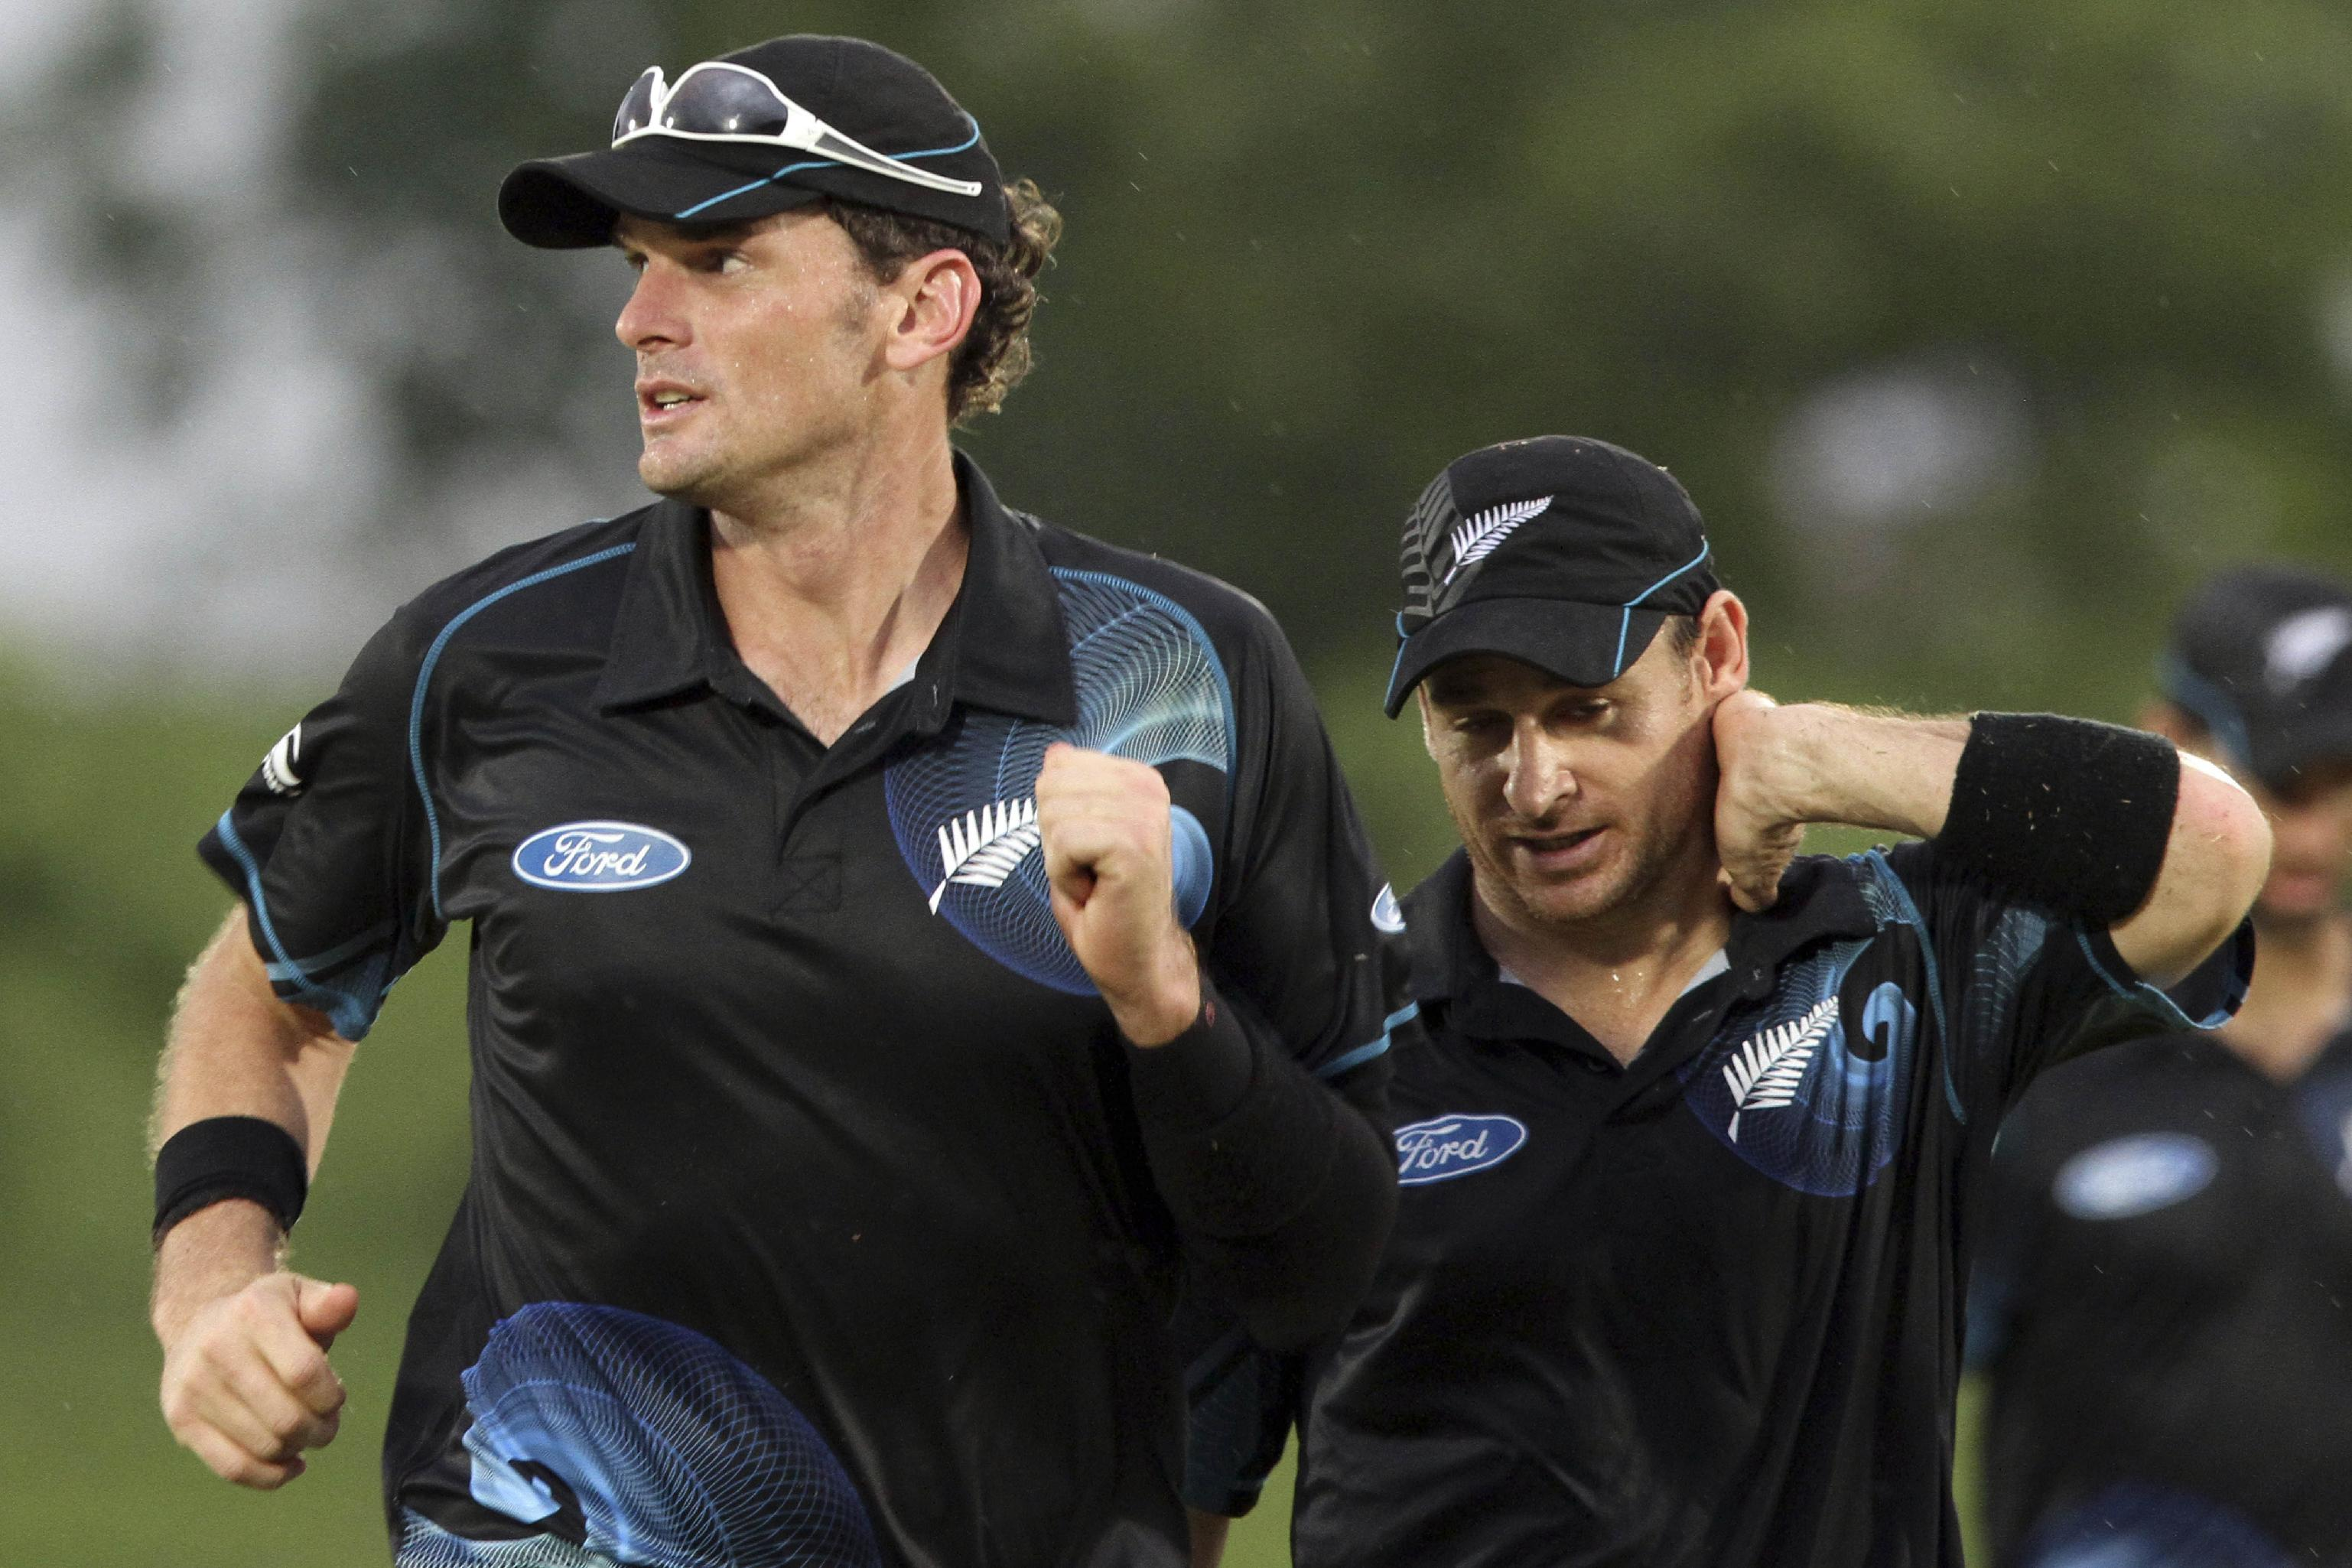 New Zealand's captain Kyle Mills, left, and Nathan McCullum leave the ground as lightning interrupts the second one-day international cricket match between Sri Lanka and New Zealand in Sooriyawewa, Sri Lanka, Tuesday, Nov. 12, 2013. (AP Photo)